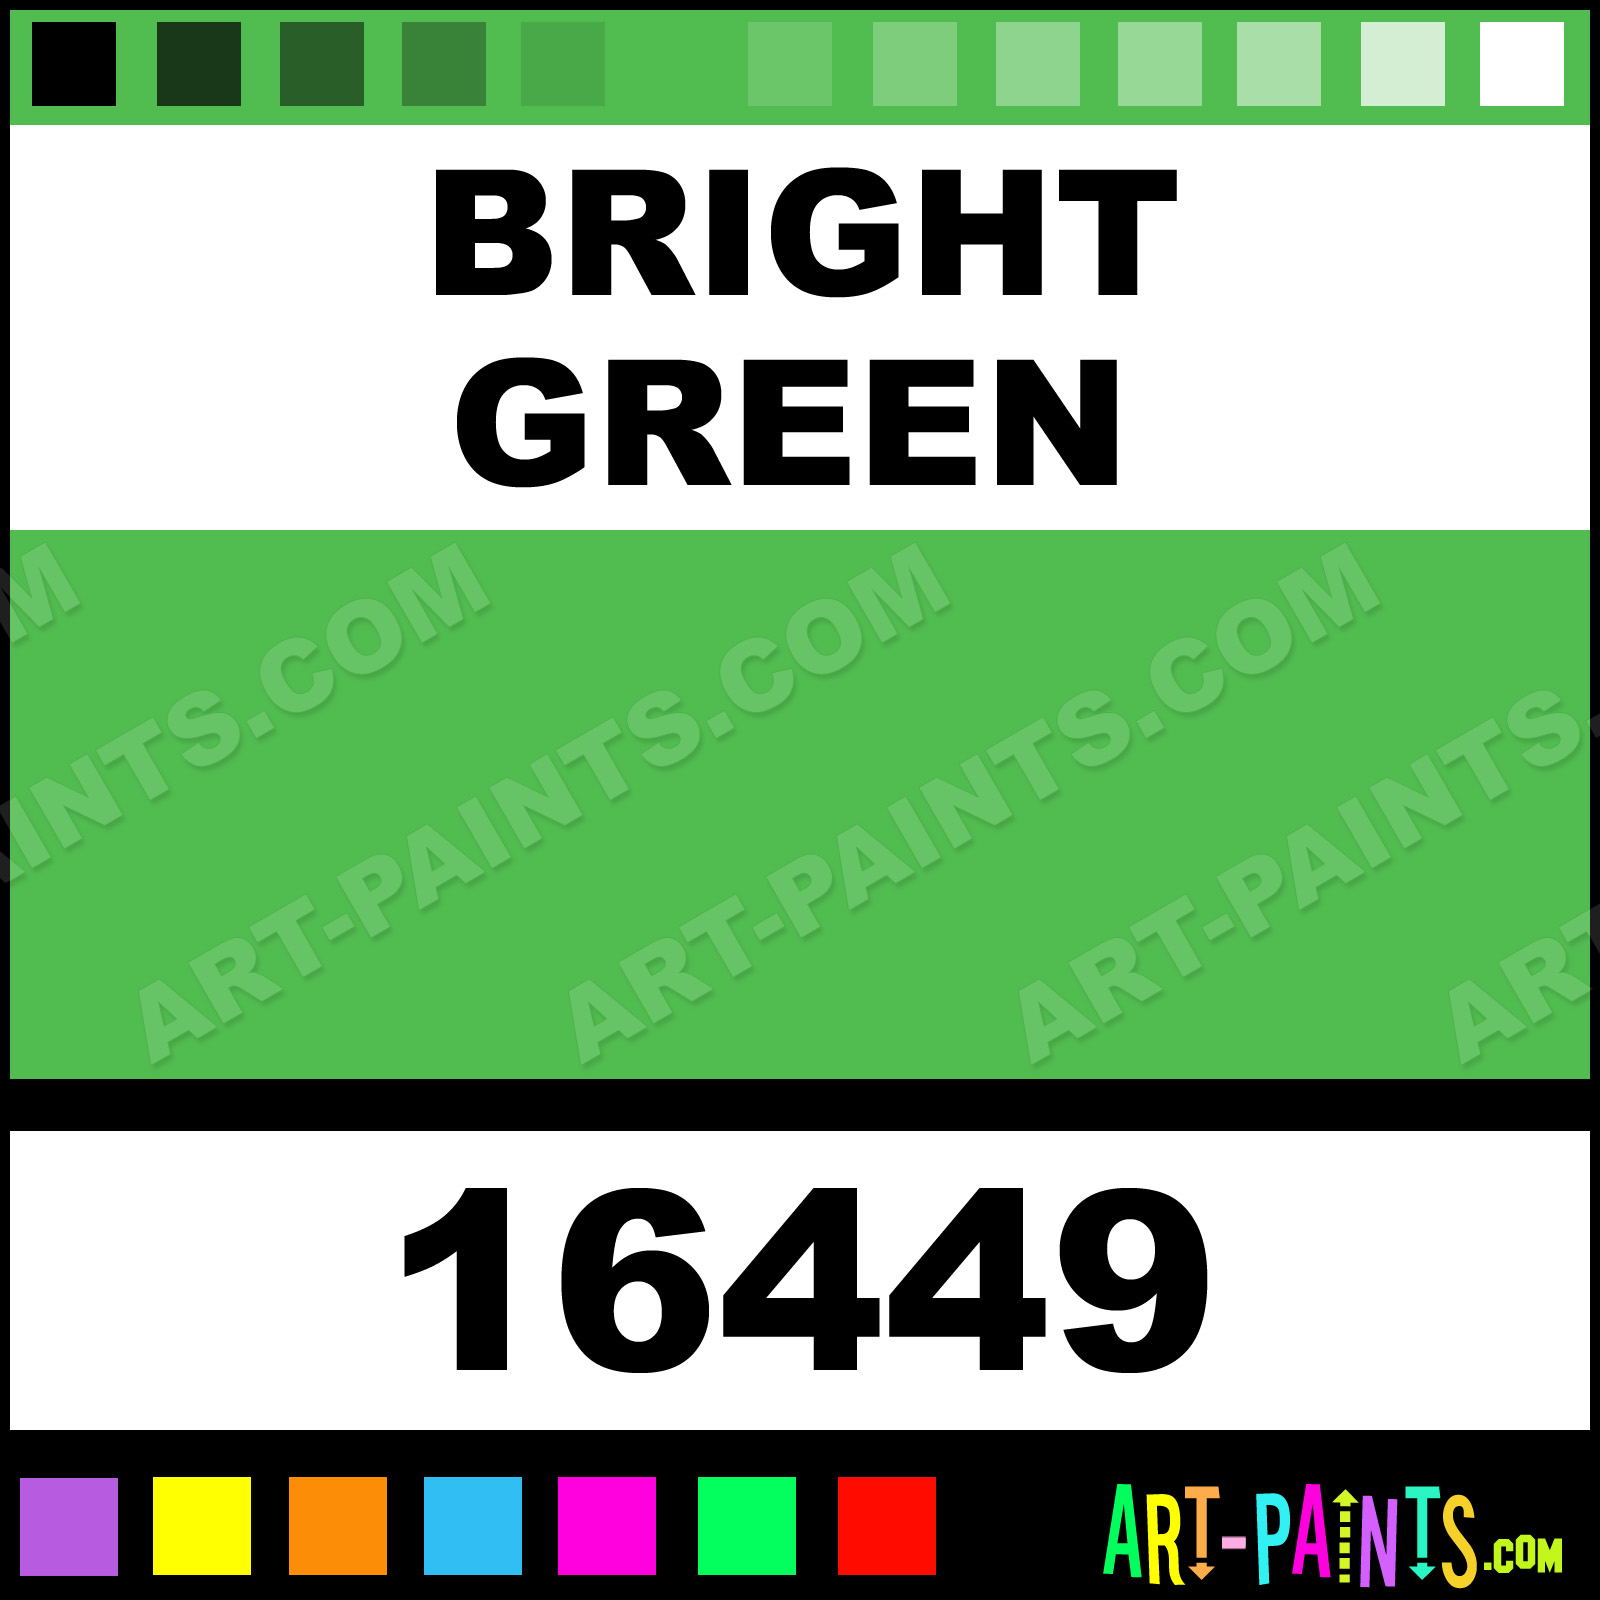 Bright Green Window Colors Stained Gl Paints 16449 Paint Color Plaid 50bc4f Art